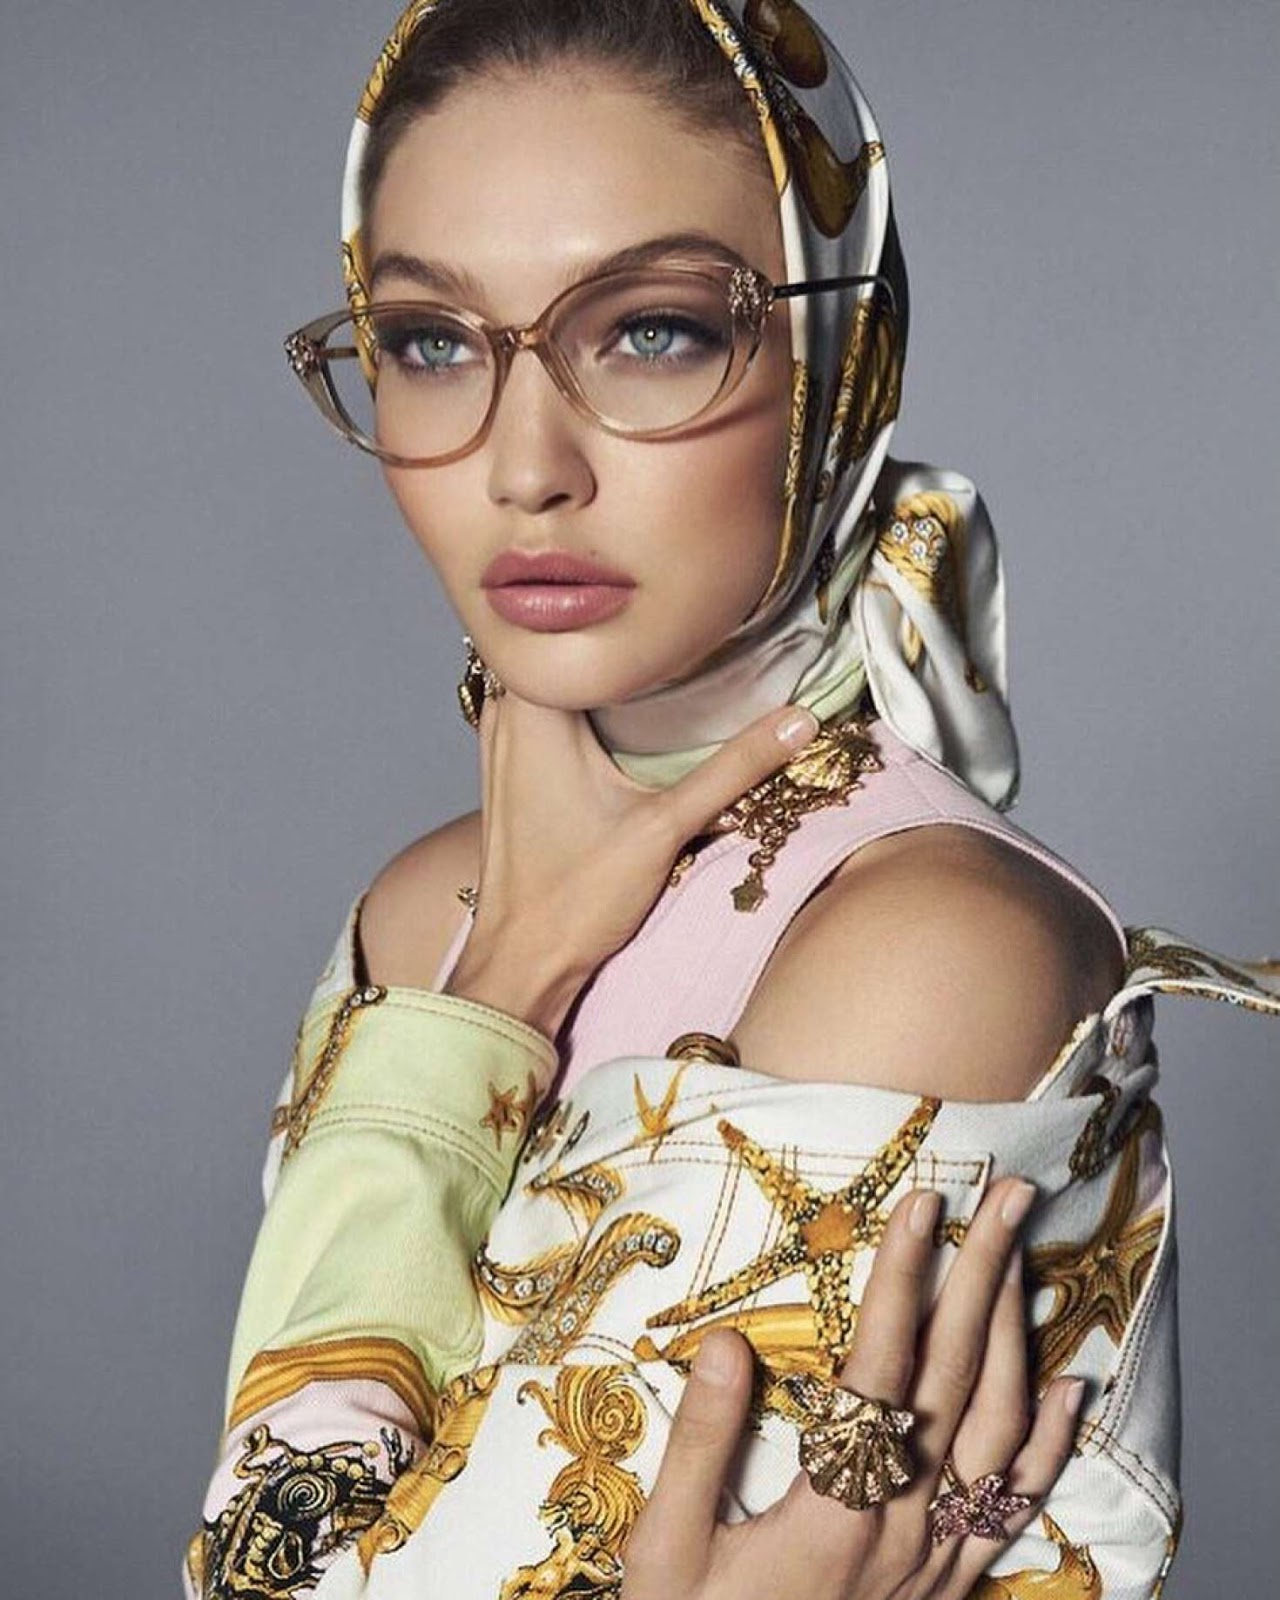 Gigi Hadid poses for the Versace Spring/Summer 2018 Campaign